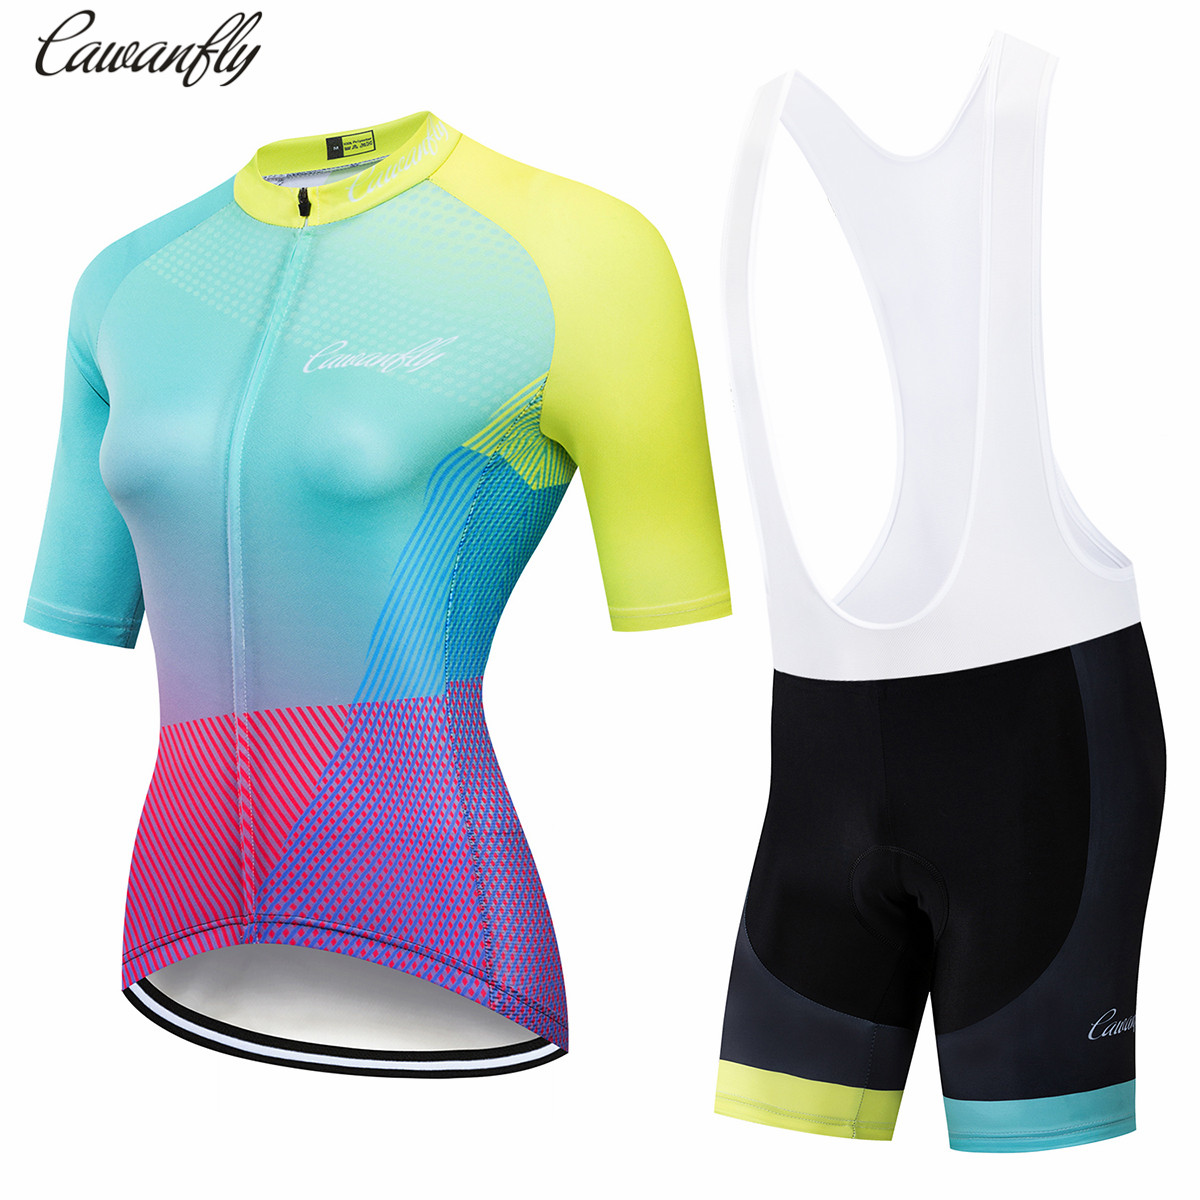 Banesto Pro Cycling Clothing Women Team Racing Sports Cycling Jersey Set Quick Dry MTB Bike Clothing Anti-UV Bicycle Clothing